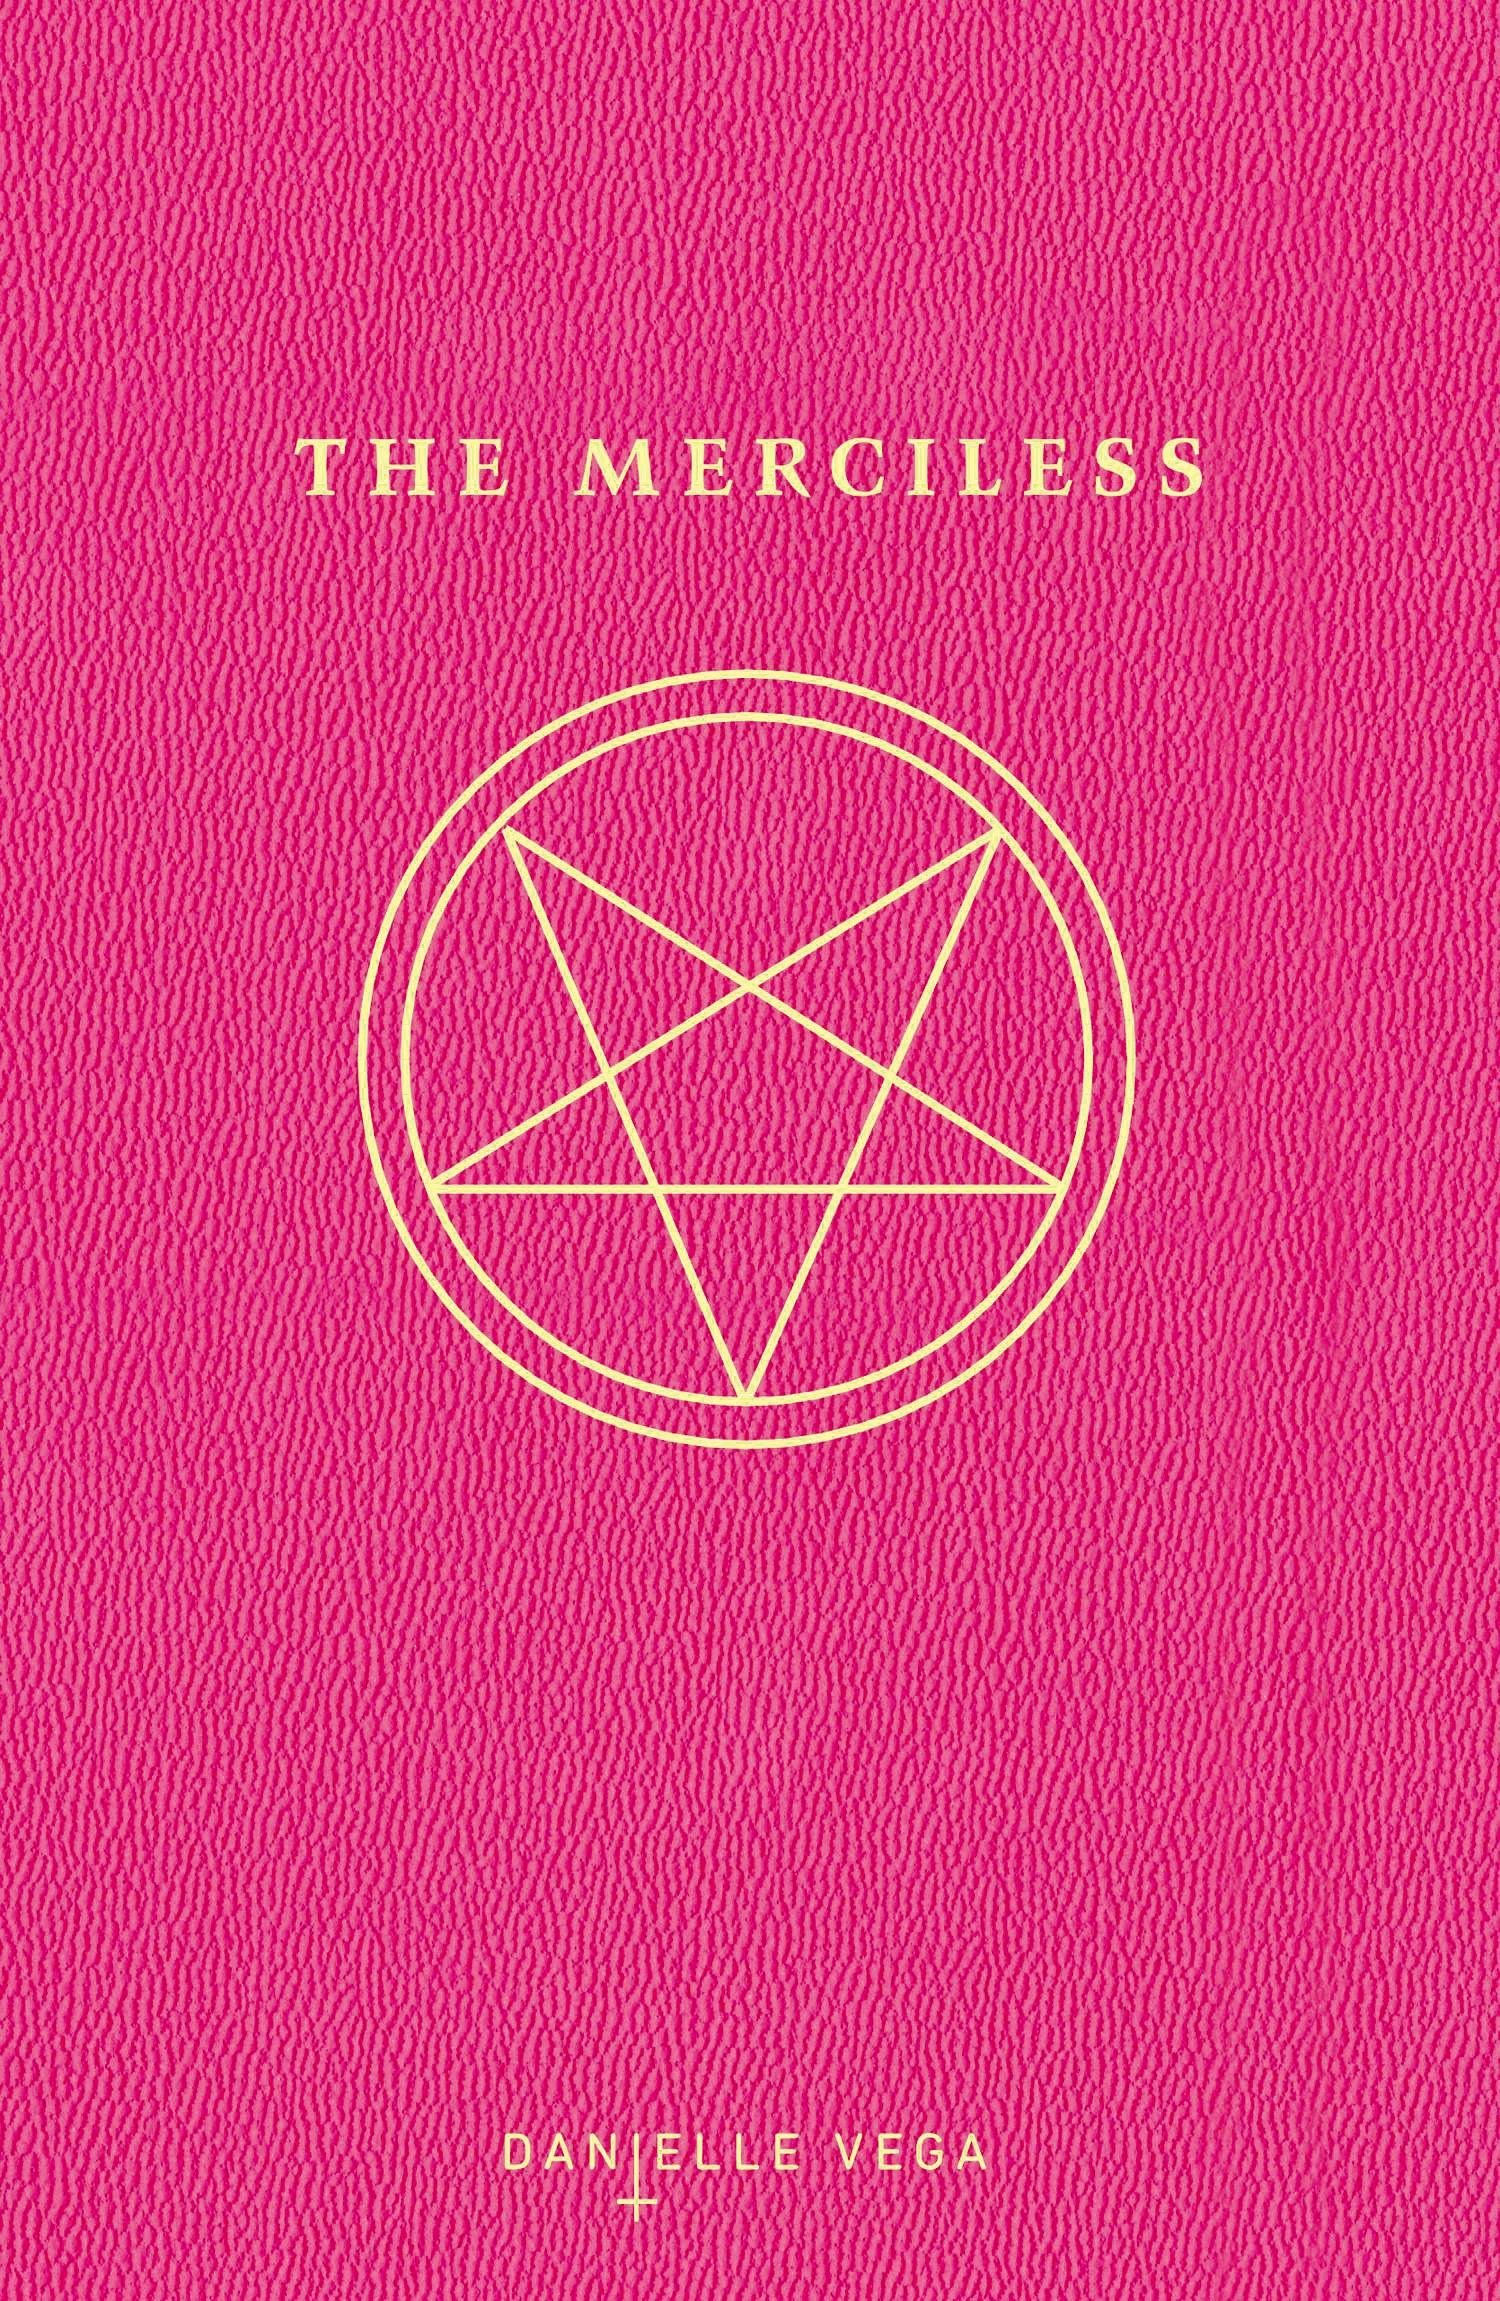 Image result for merciless book